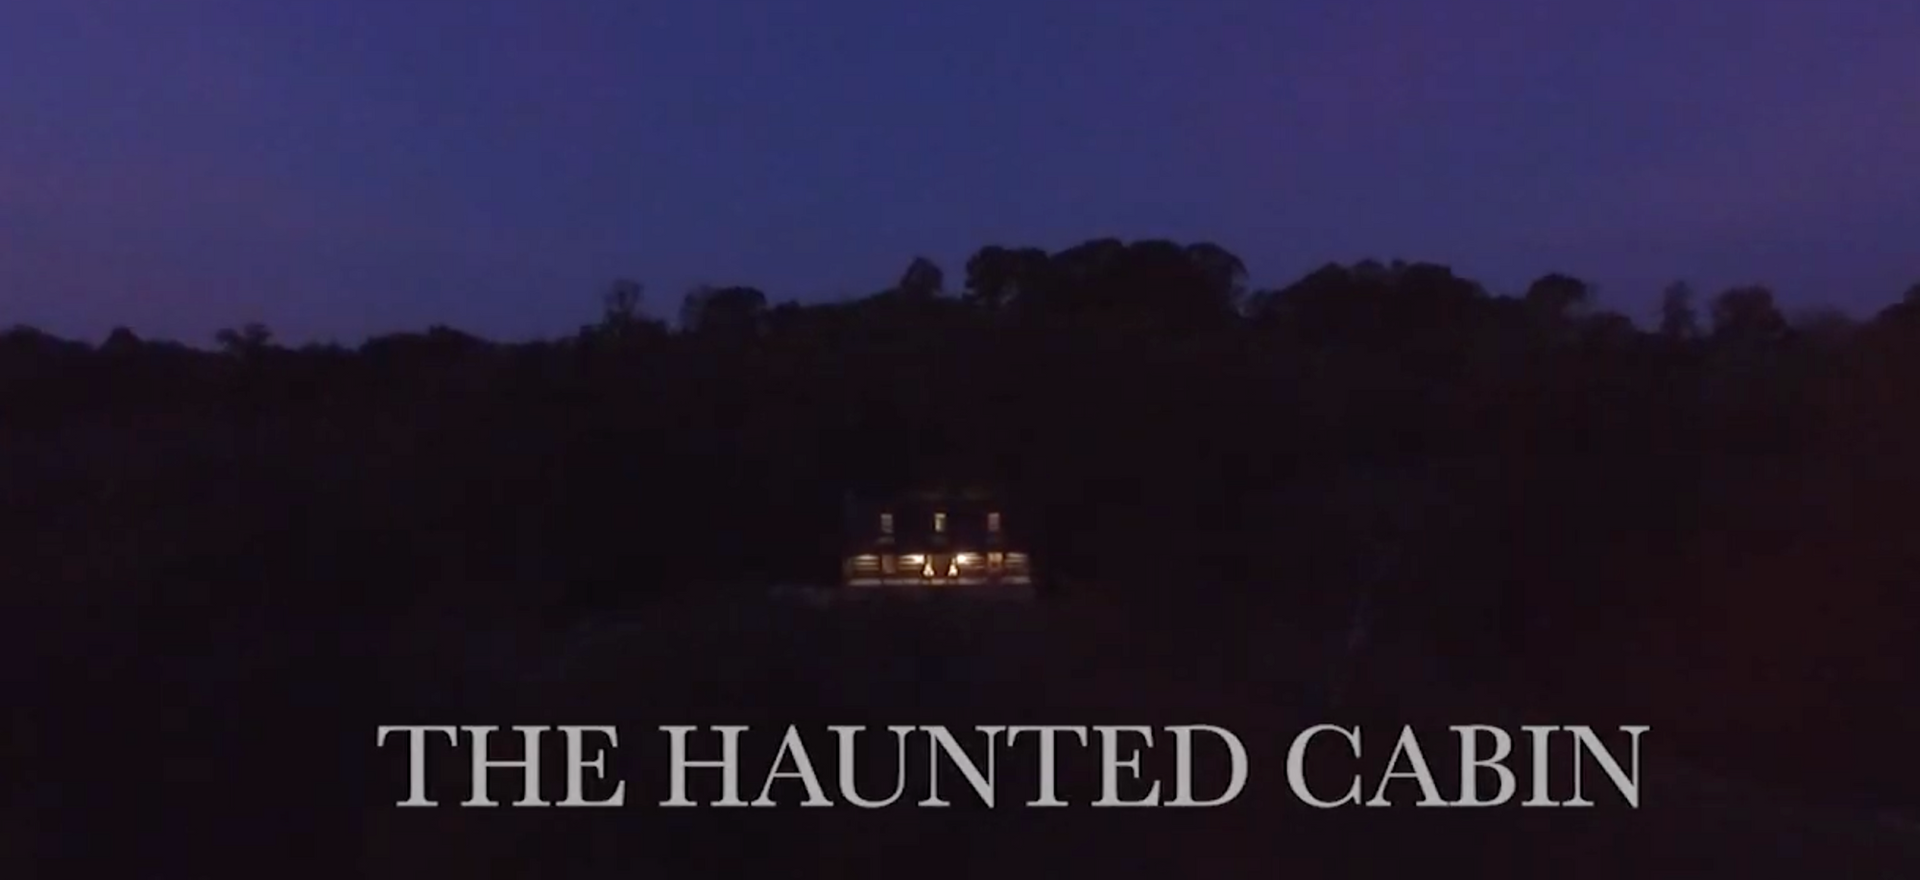 The Haunted Cabin